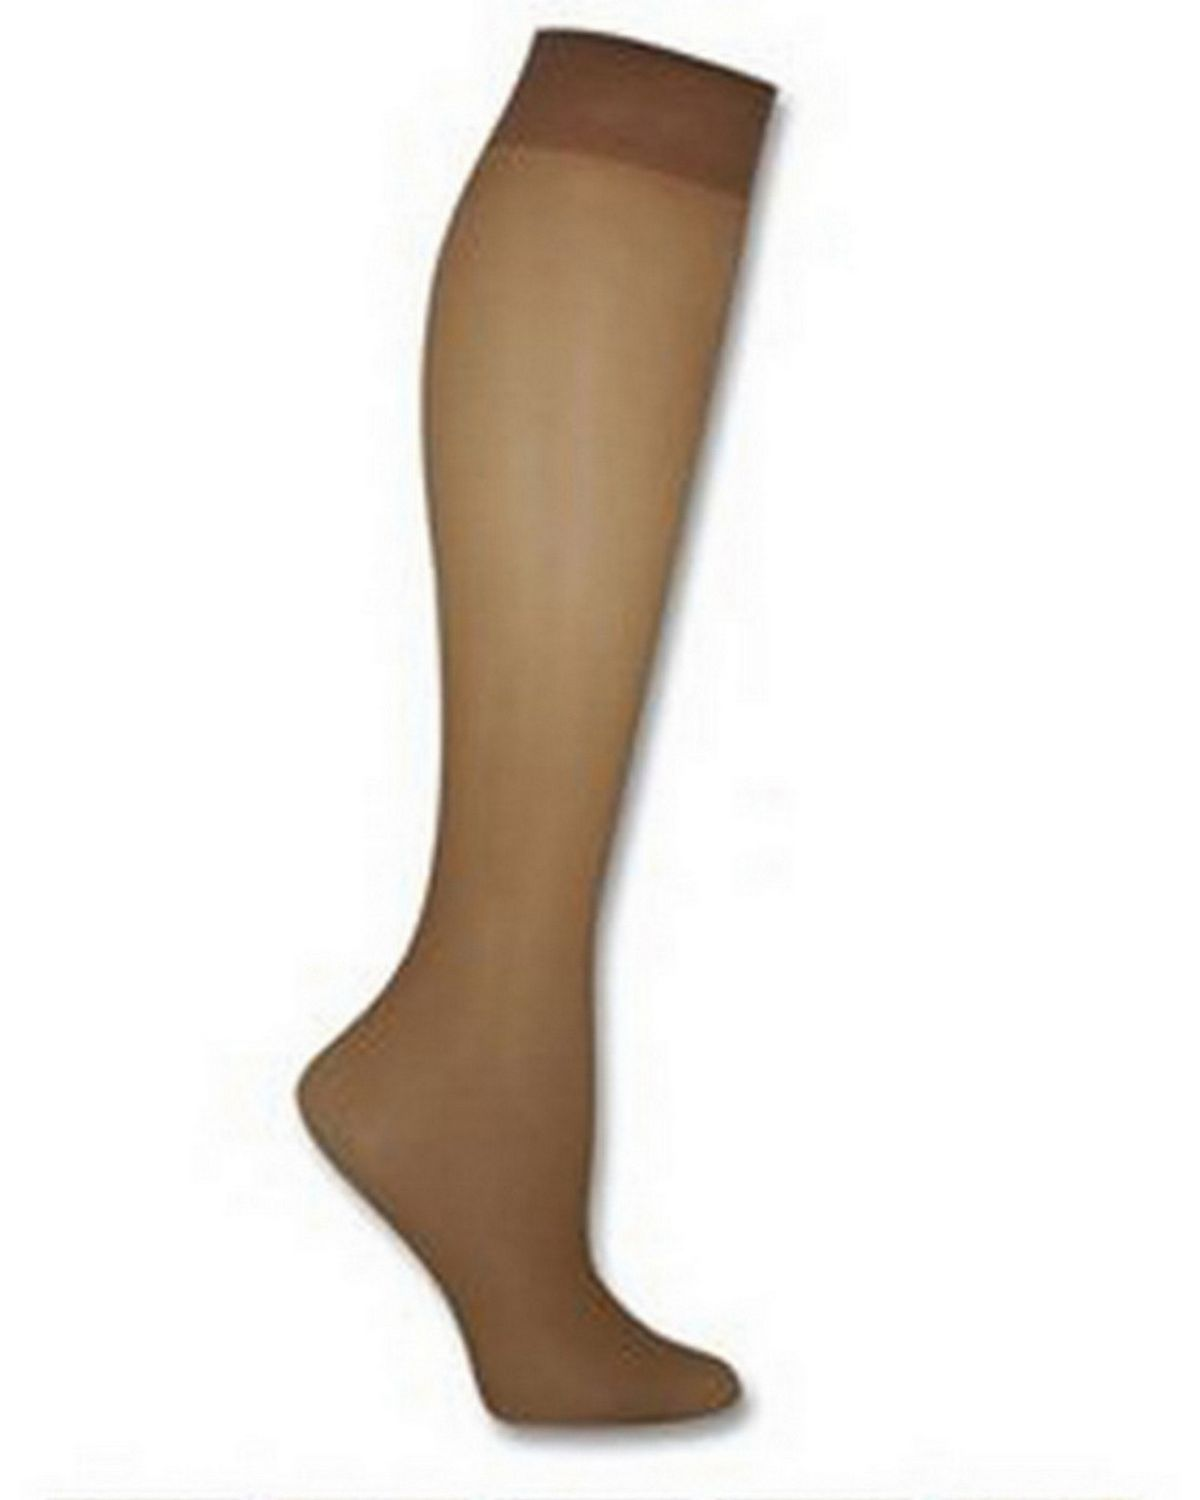 Hanes 00P19 Women's Silk Reflections Plus Silky Sheer Knee High ET - Jet - One Size #silk